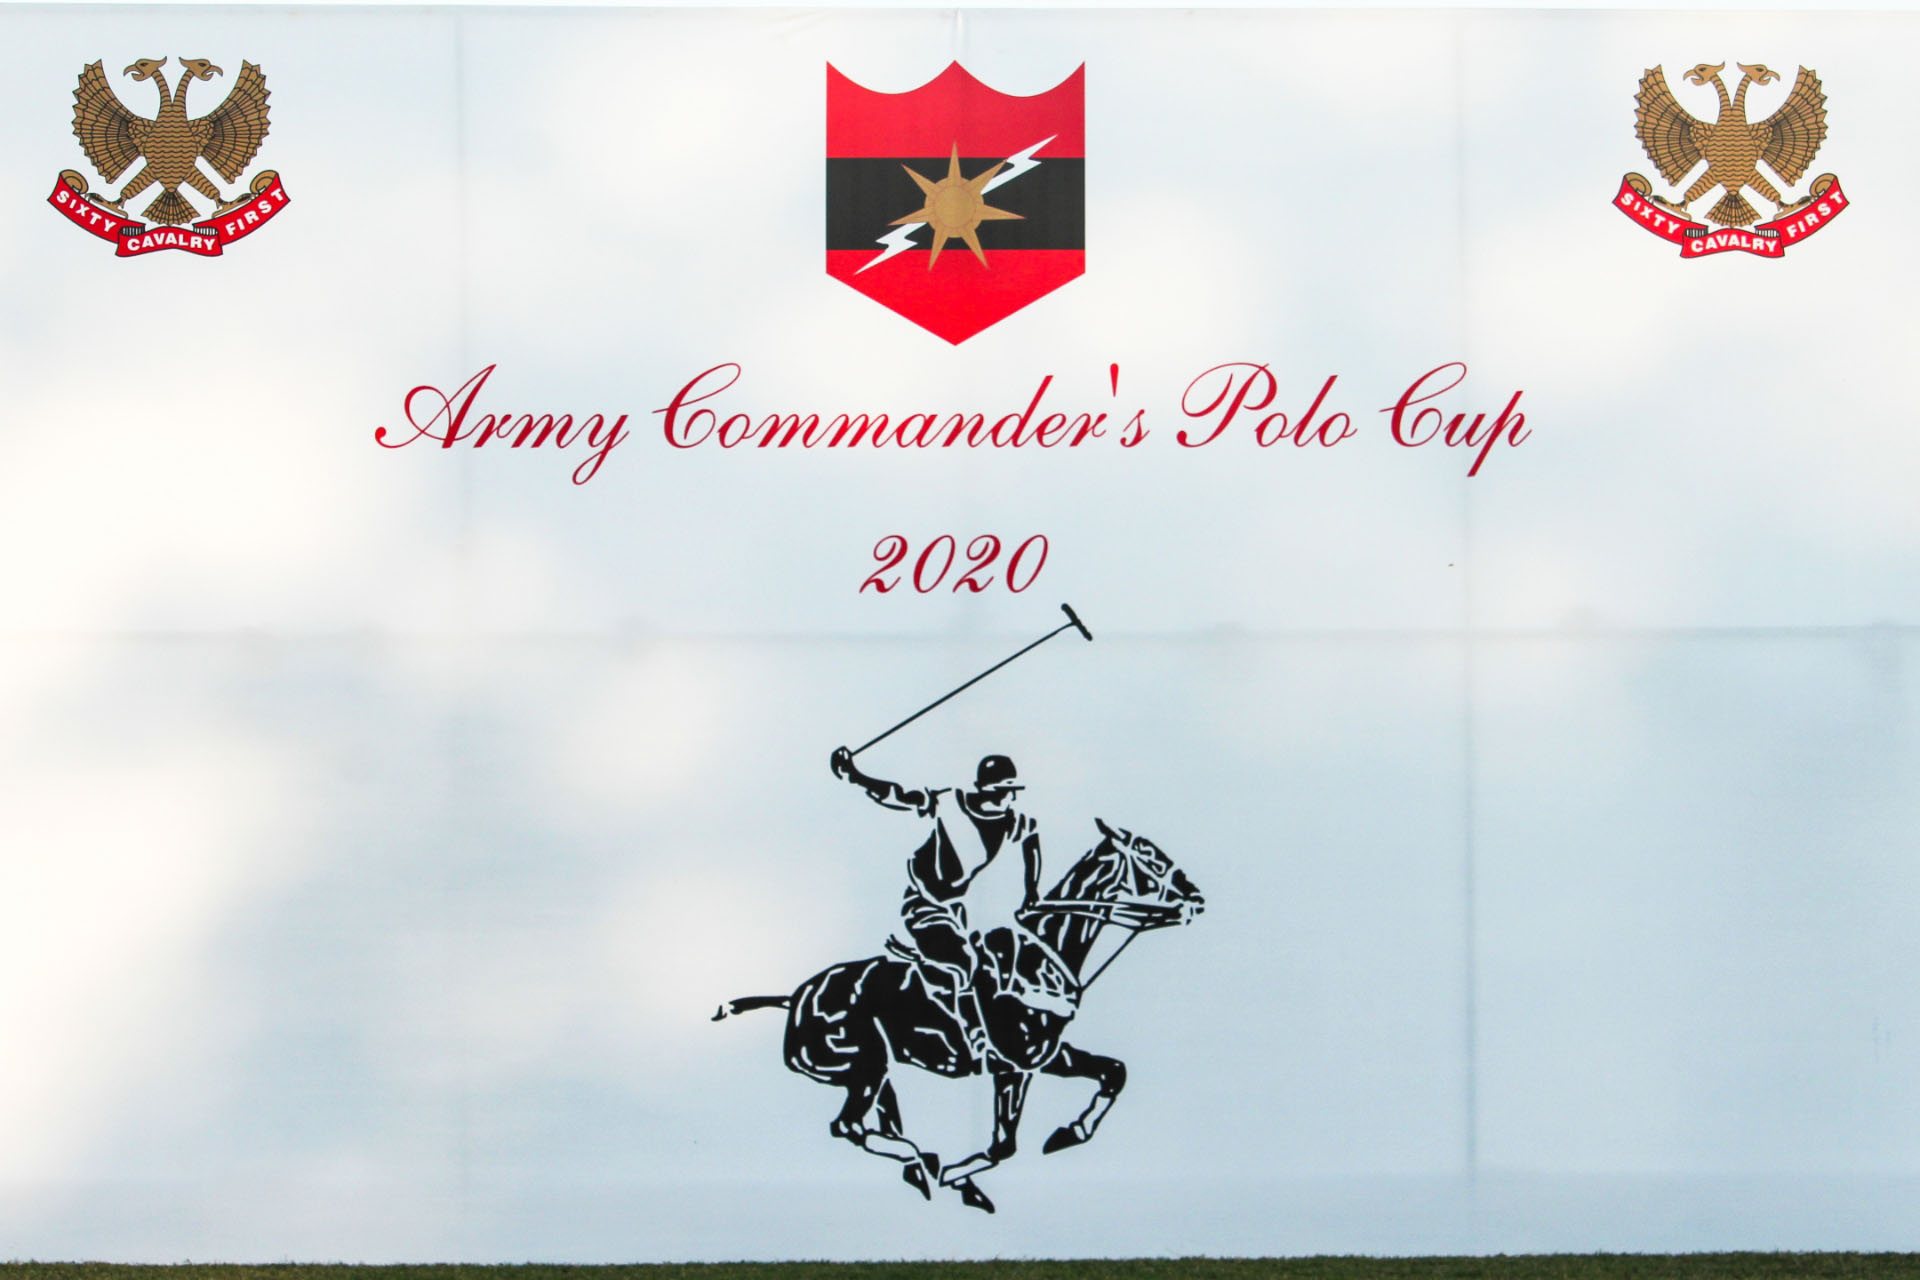 Army Cdr's Polo Cup | 8 goal